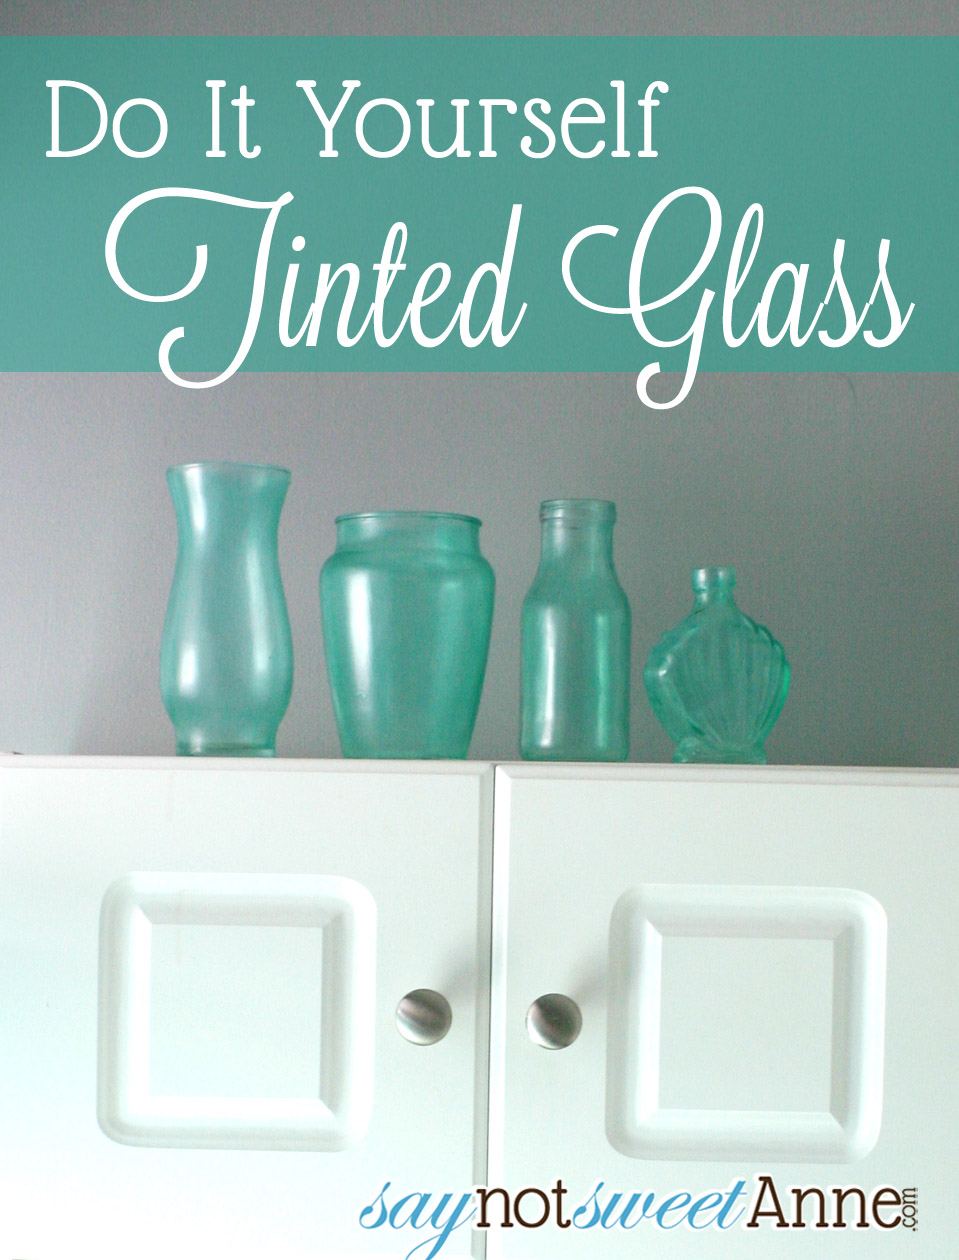 Pinterest Inspired Faux Tinted Glass | saynotsweetanne.com